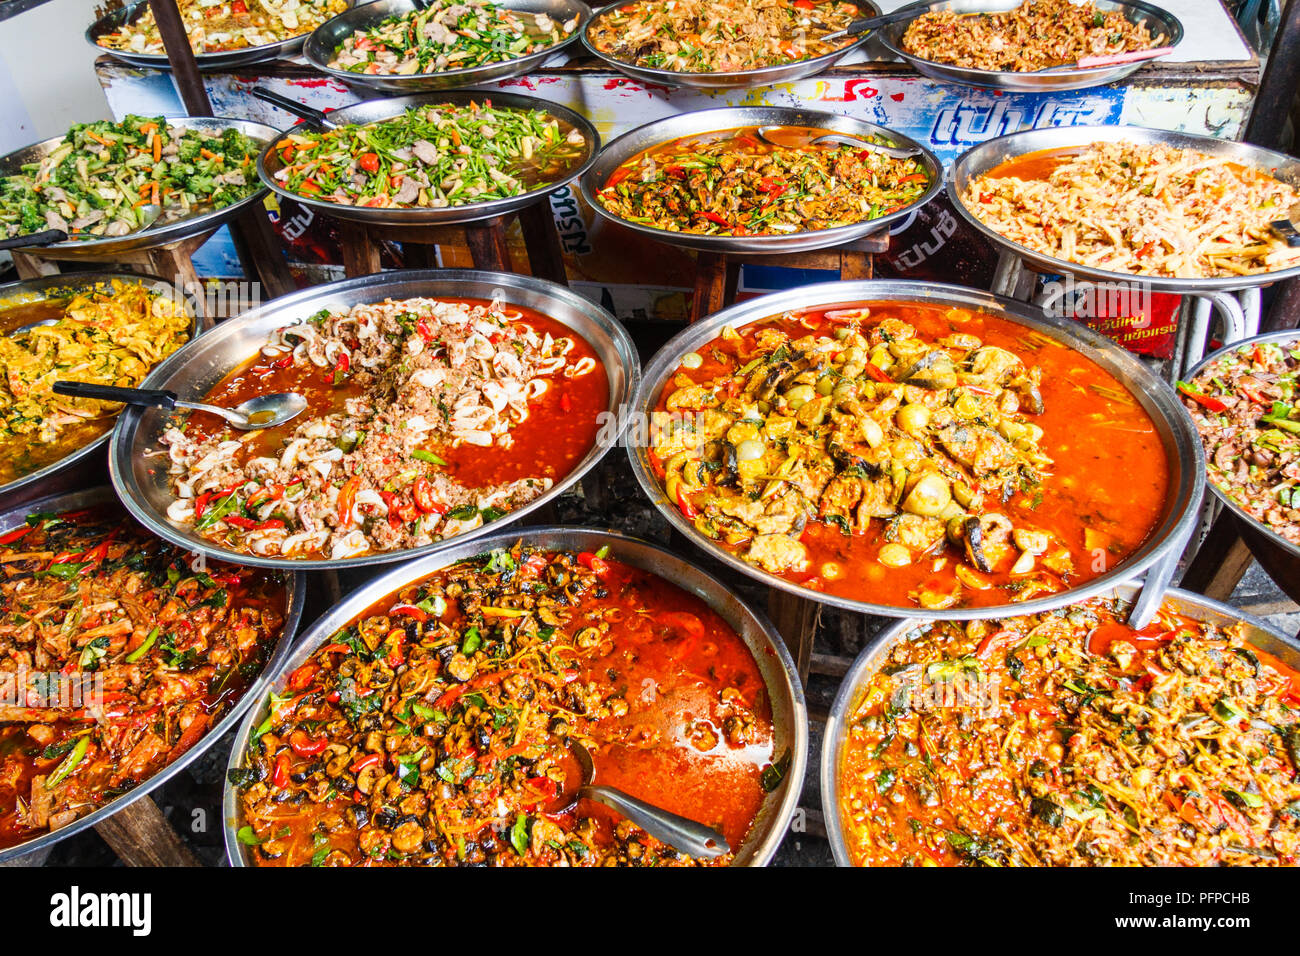 Platters of traditional Thai food for sale on street market stall, Bangkok, Thailand - Stock Image